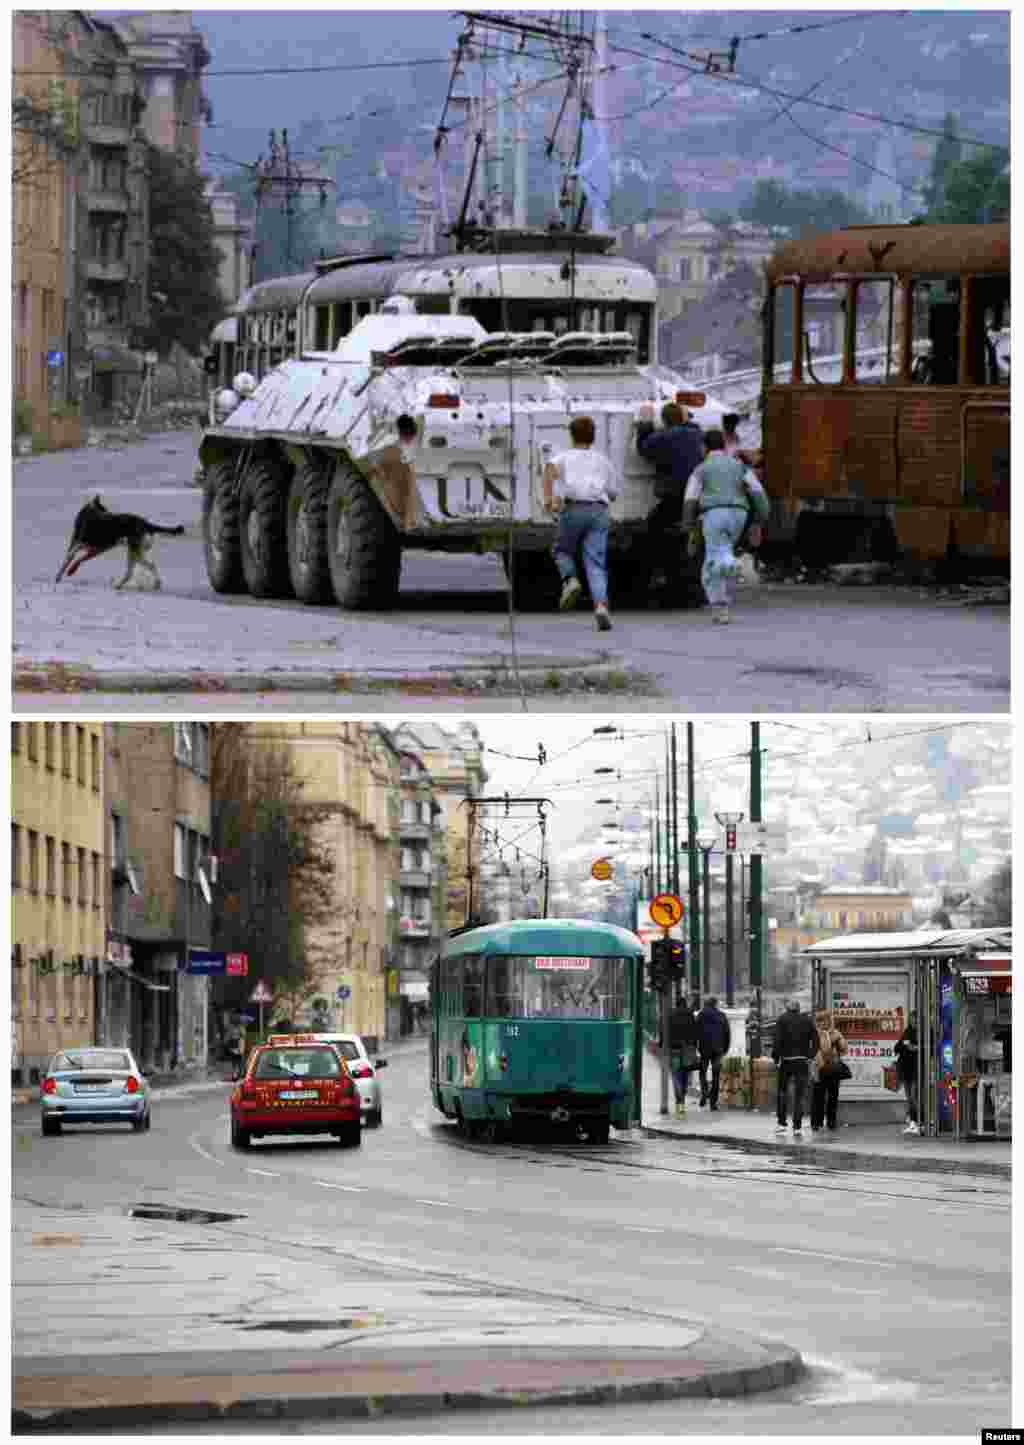 Three boys run behind a UN armored personnel carrier as it moves past a burned-out tram in Skenderia Square on August 10, 1993. Vehicles, including a tram, in the same square on April 1, 2012.